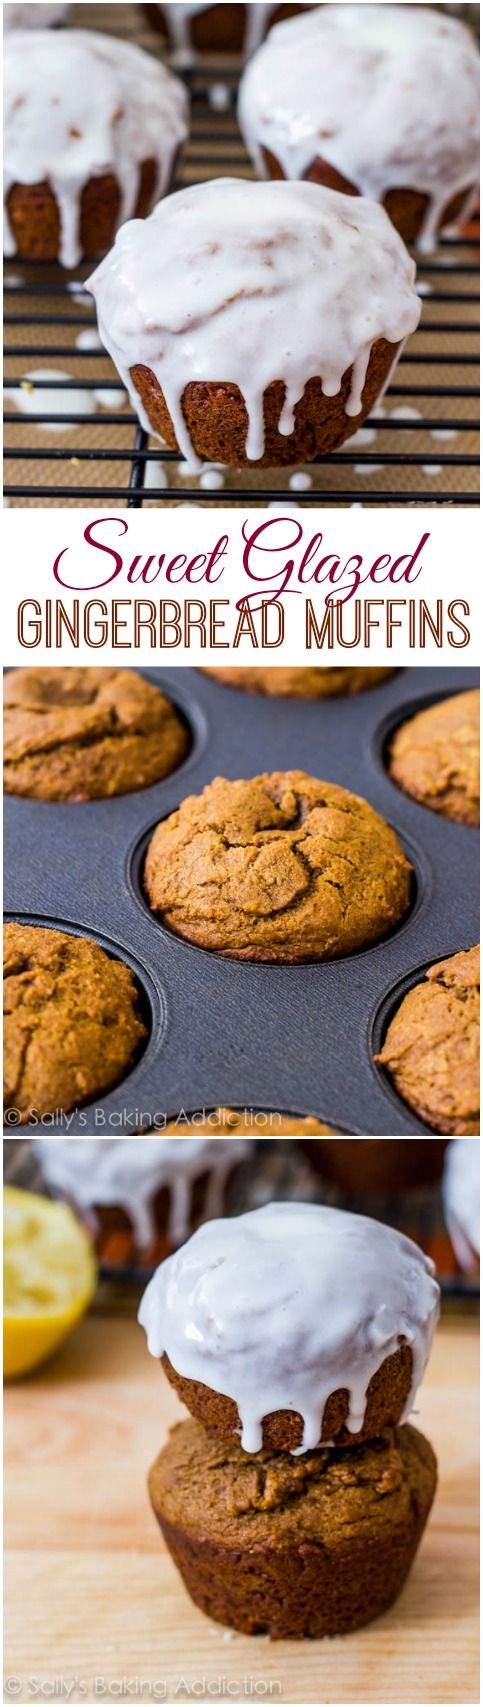 Glazed Gingerbread Muffins-- I make these every year. They're amazing.